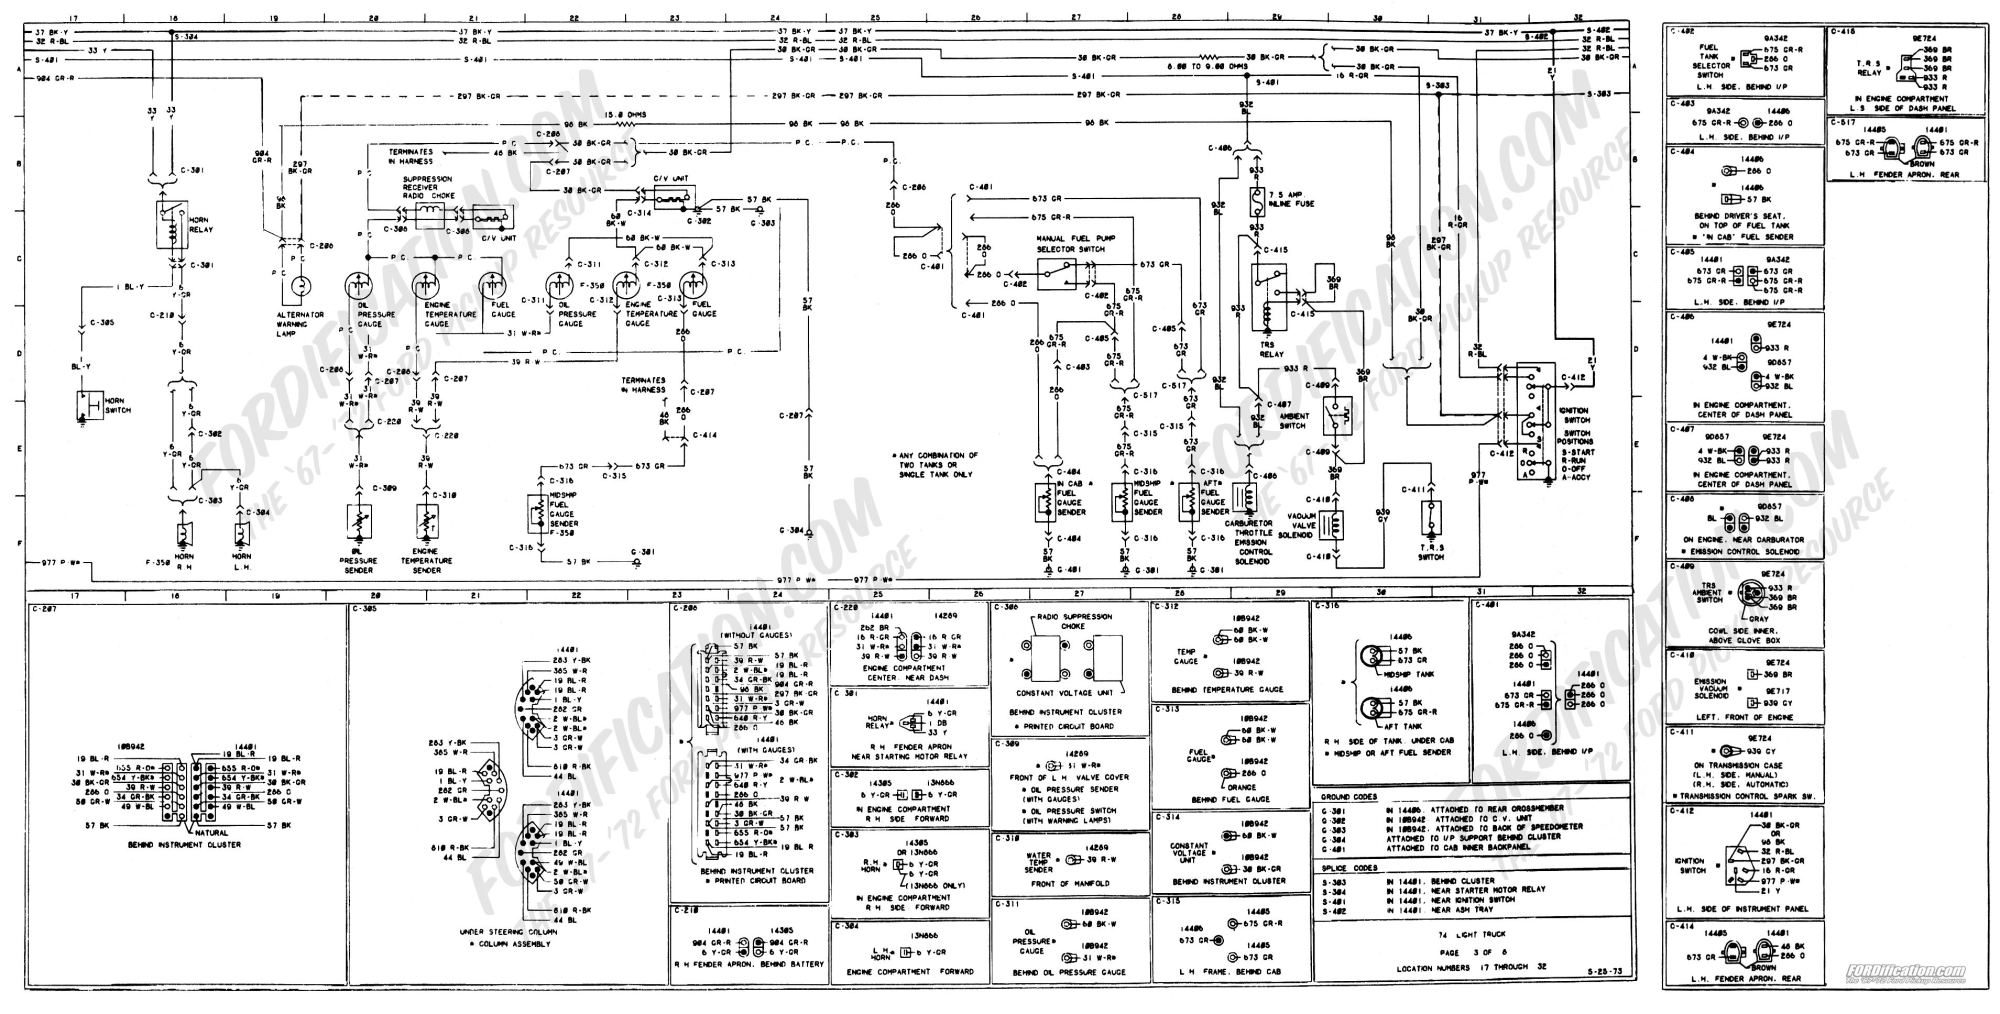 hight resolution of ford l9000 wiring diagram wiring diagram third level ford l9000 fuel solenoid wiring diagram ford l9000